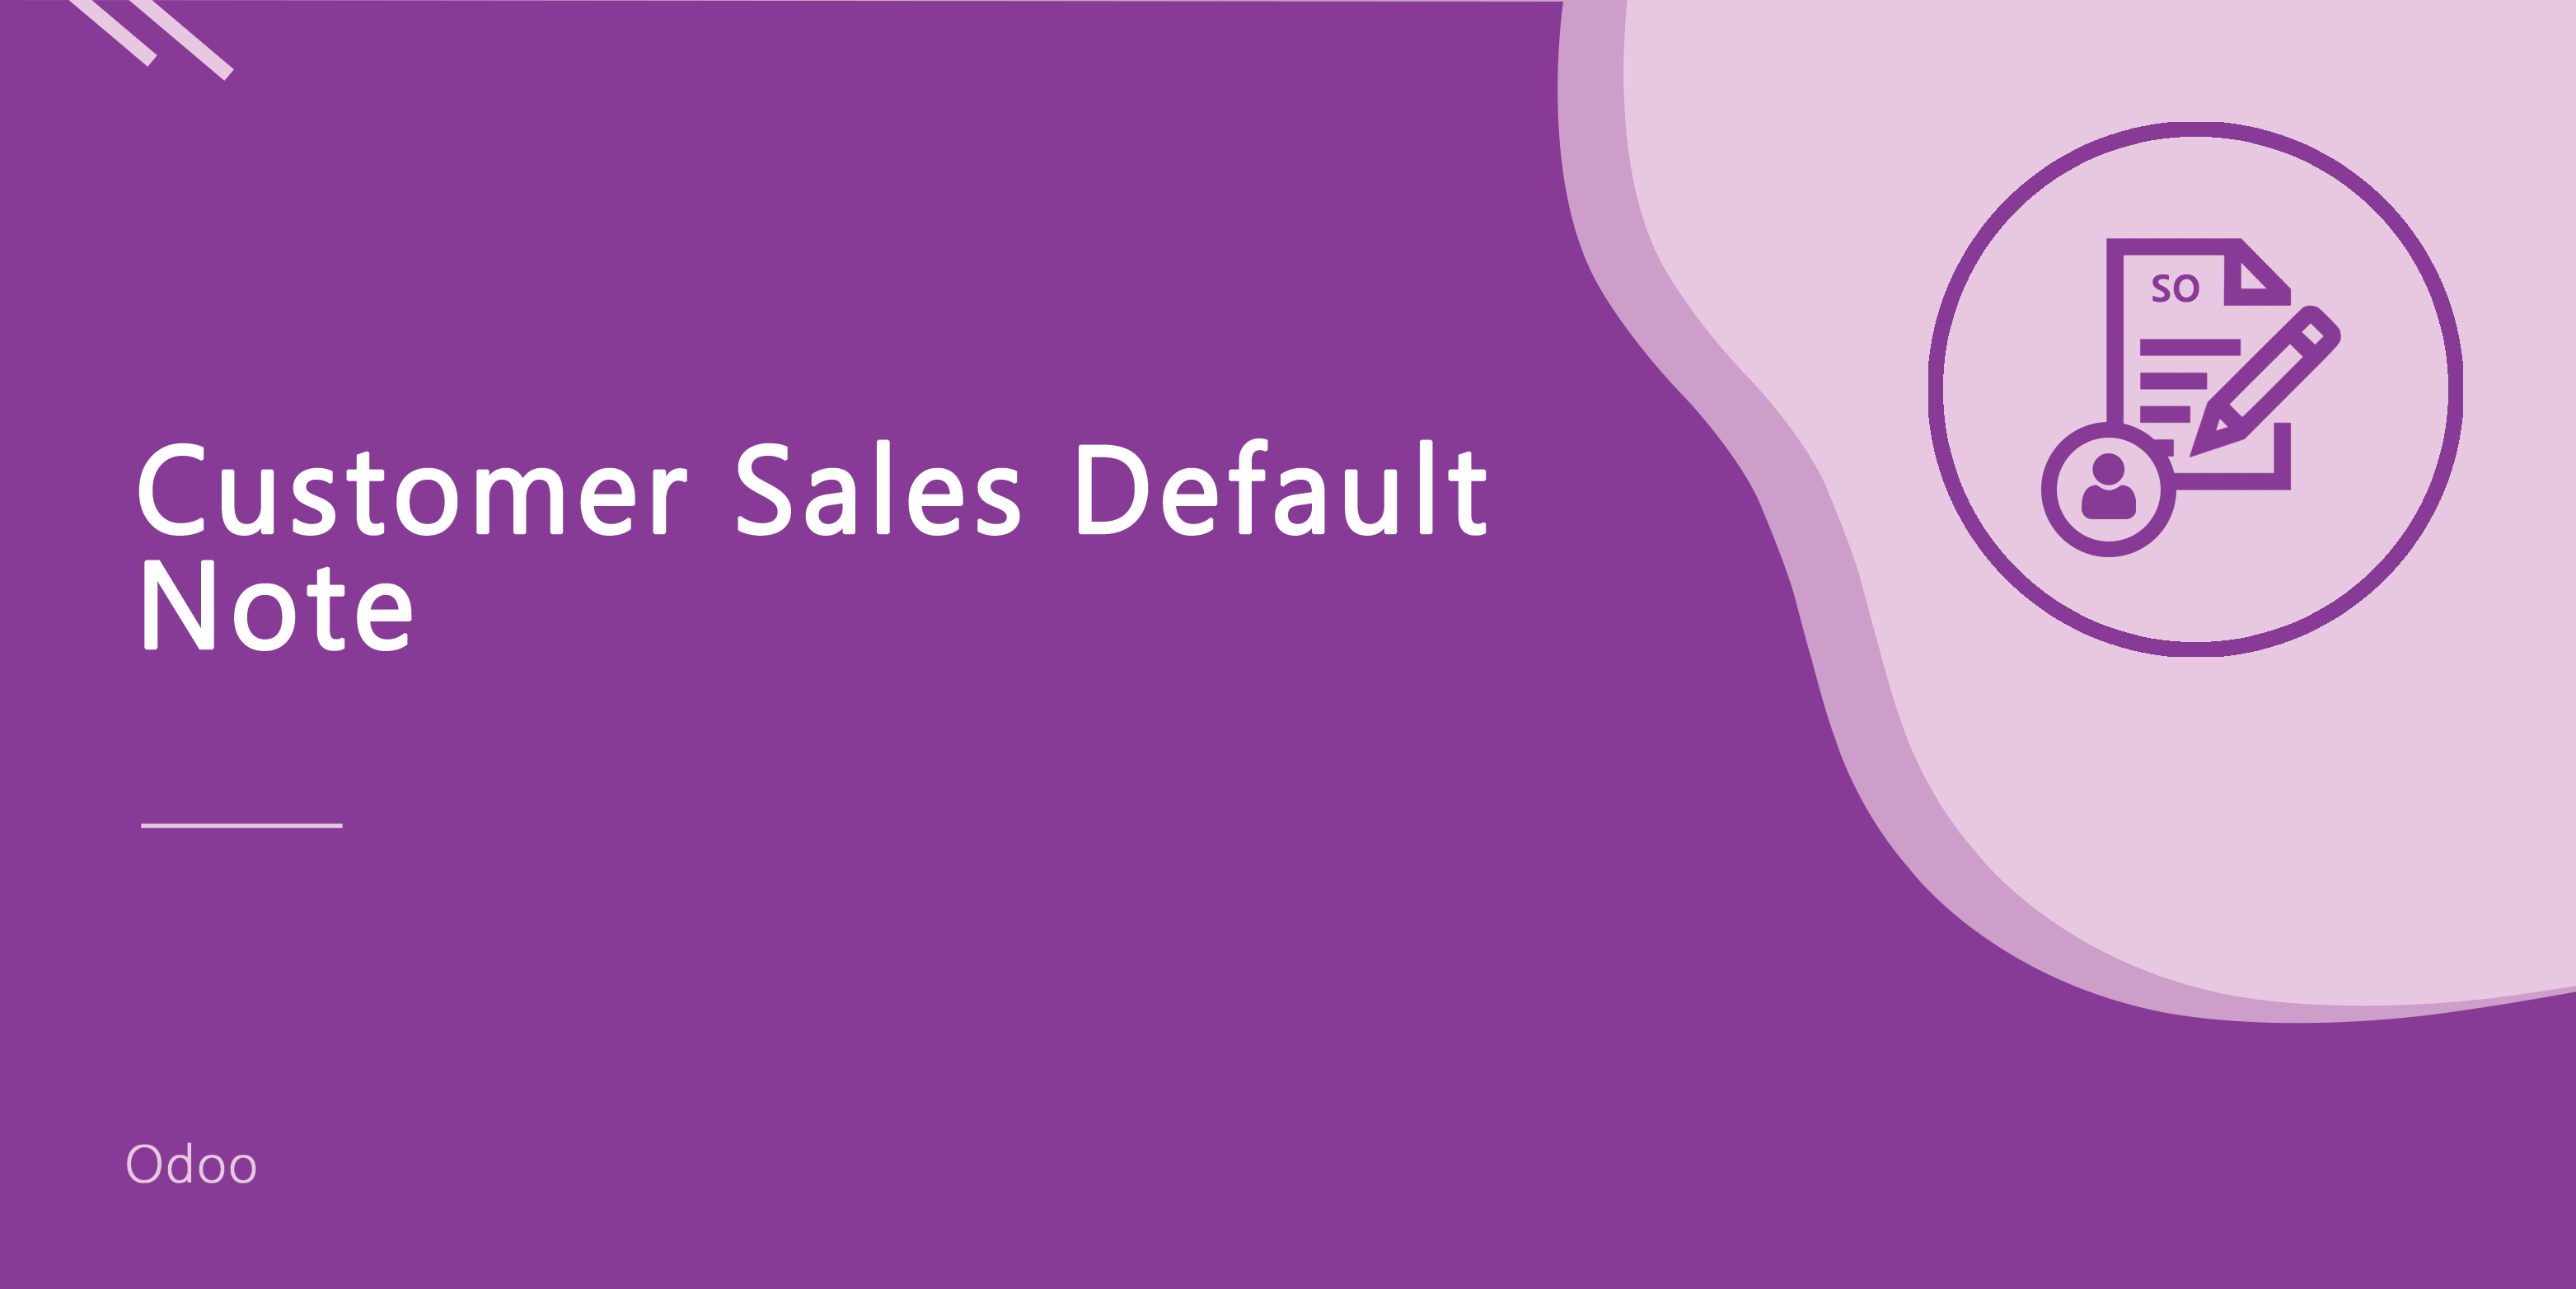 Customer Sales Default Note